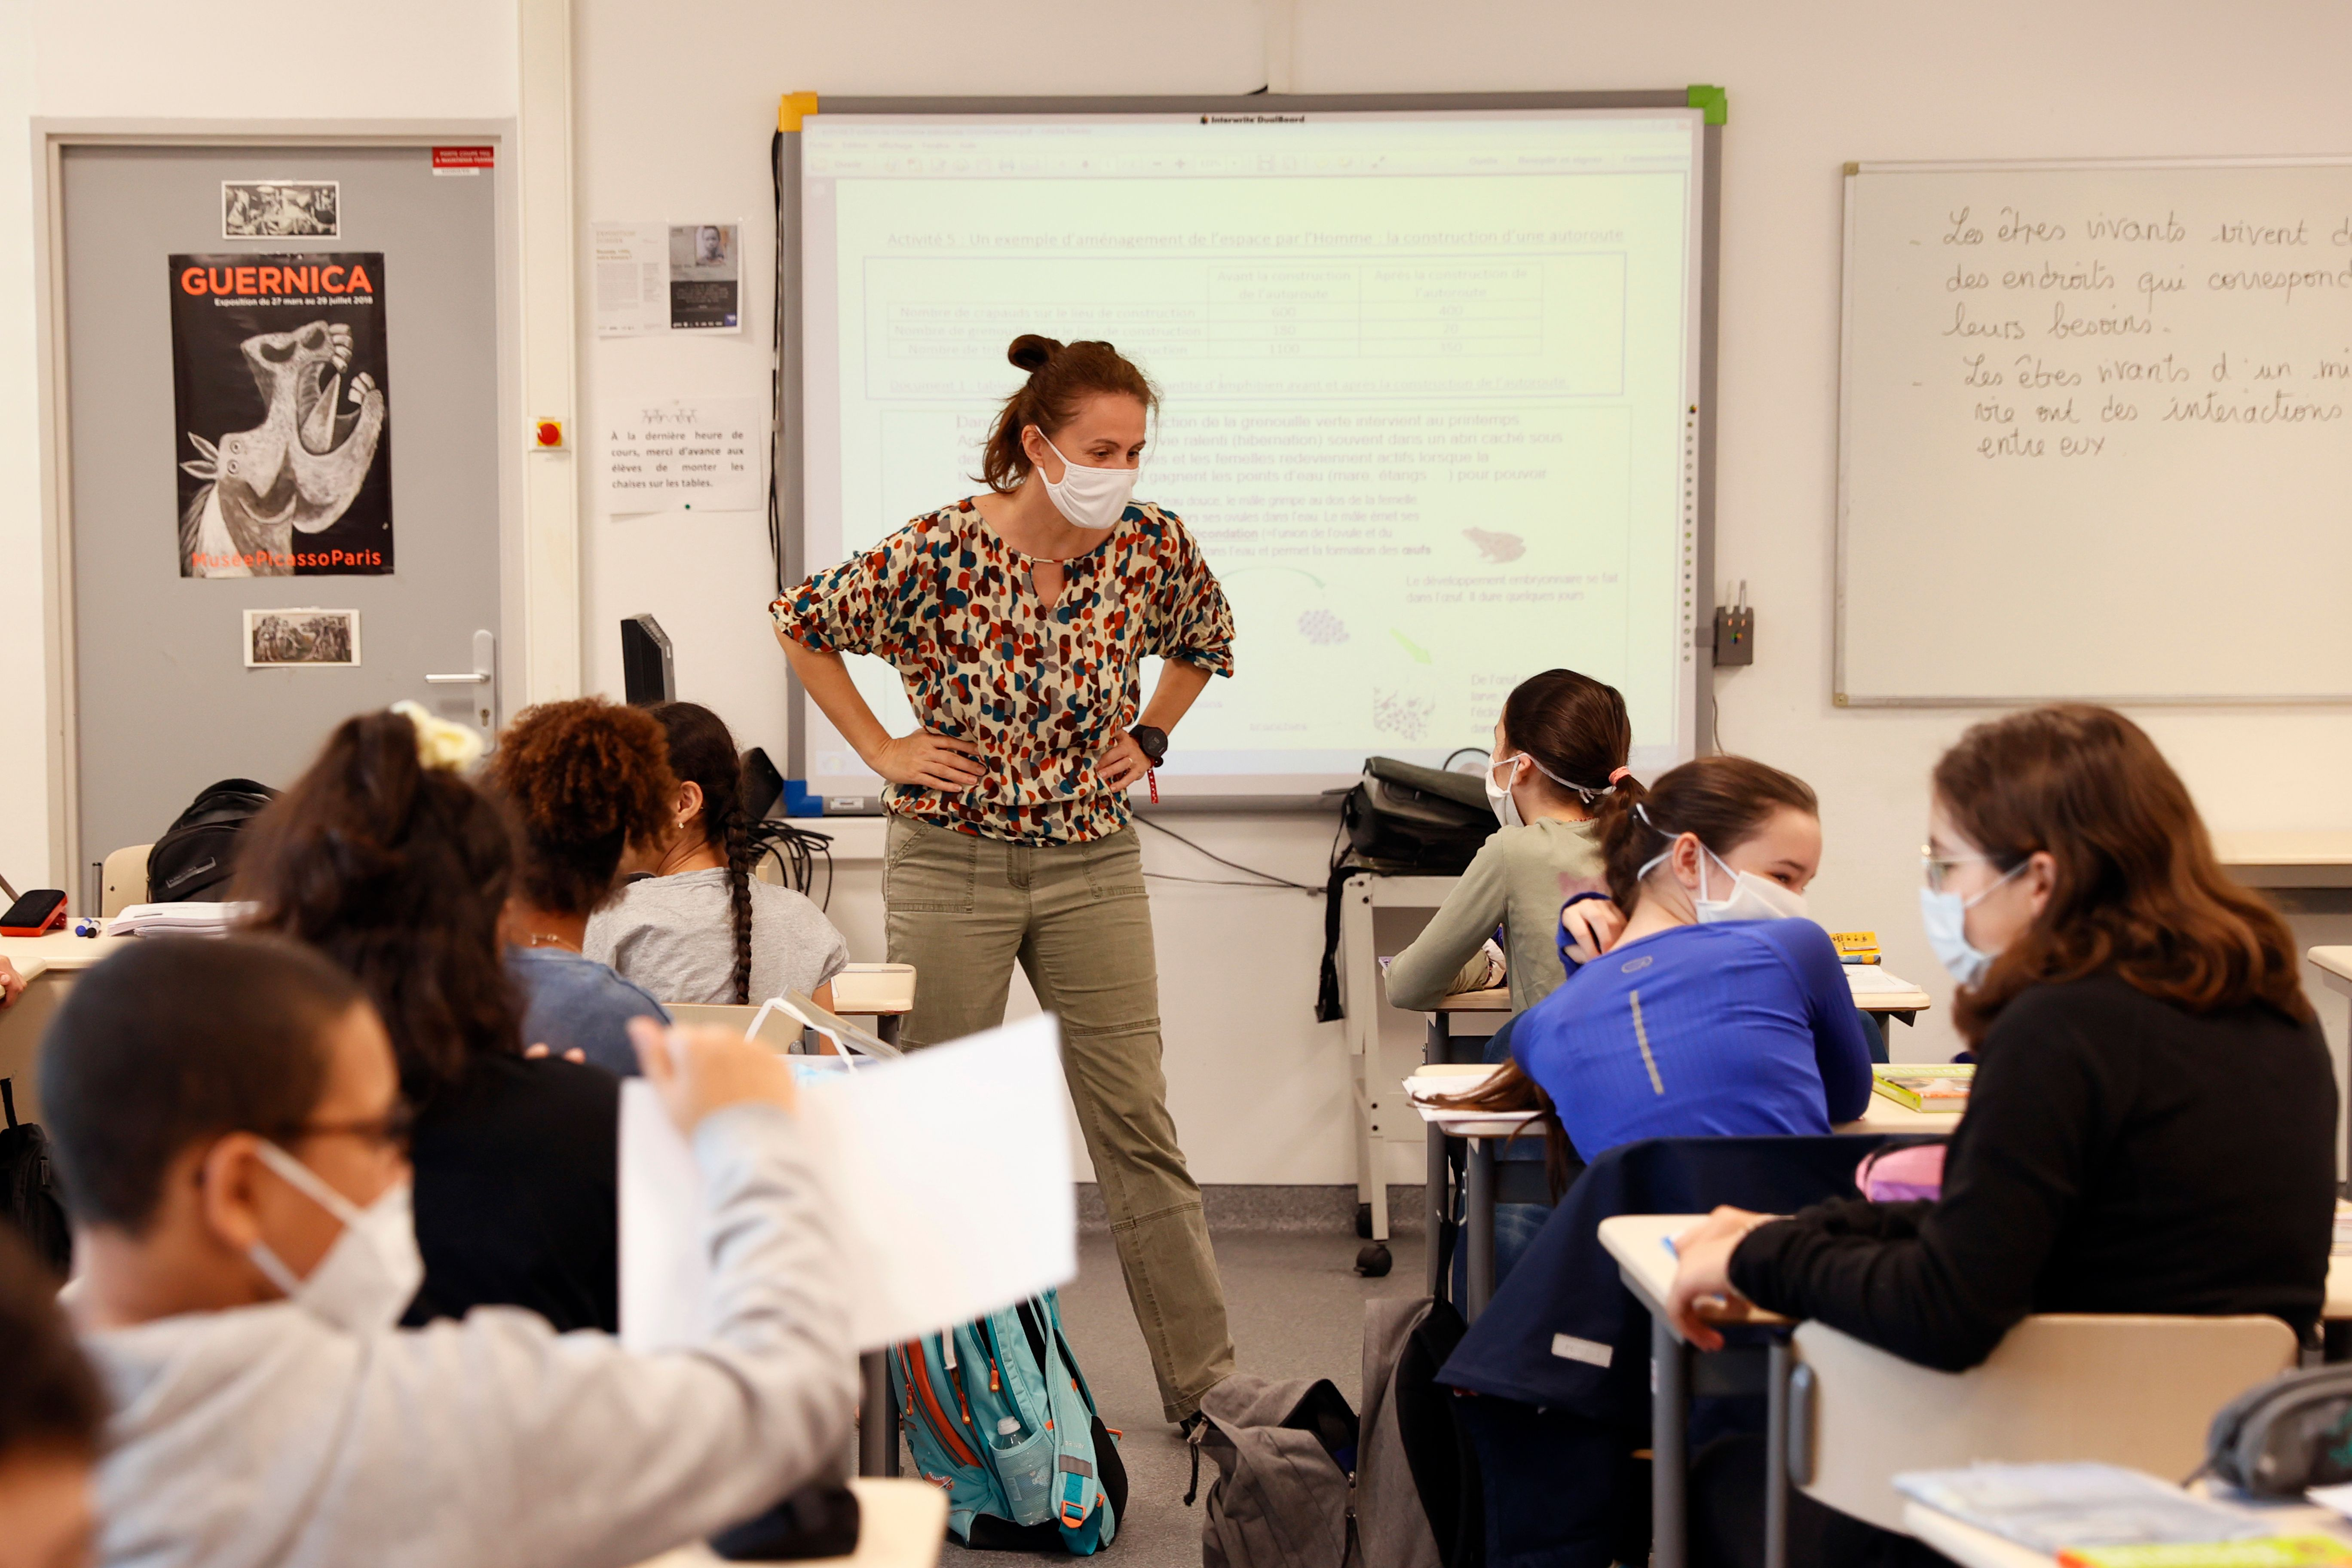 Middle school pupils attend a lesson in their classroom, on June 22, 2020 in Boulogne-Billancourt, outside Paris, as primary and middle schools reopen in France. (Thomas Samson/AFP via Getty Images)